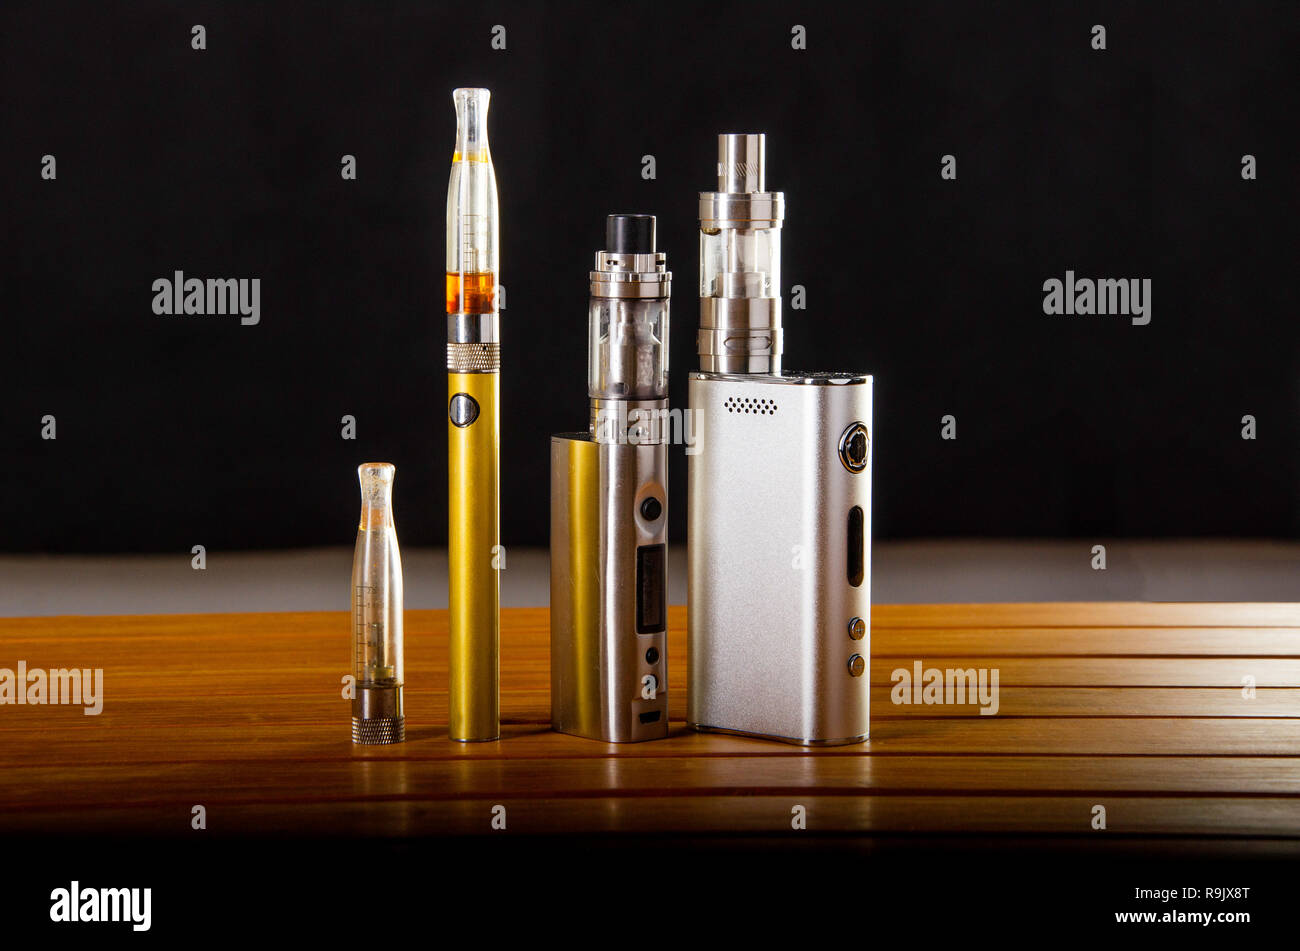 Popular vaping e cig devices mod.electronic cigarette over wooden background. vaporizer e-cig old device model. Stock Photo